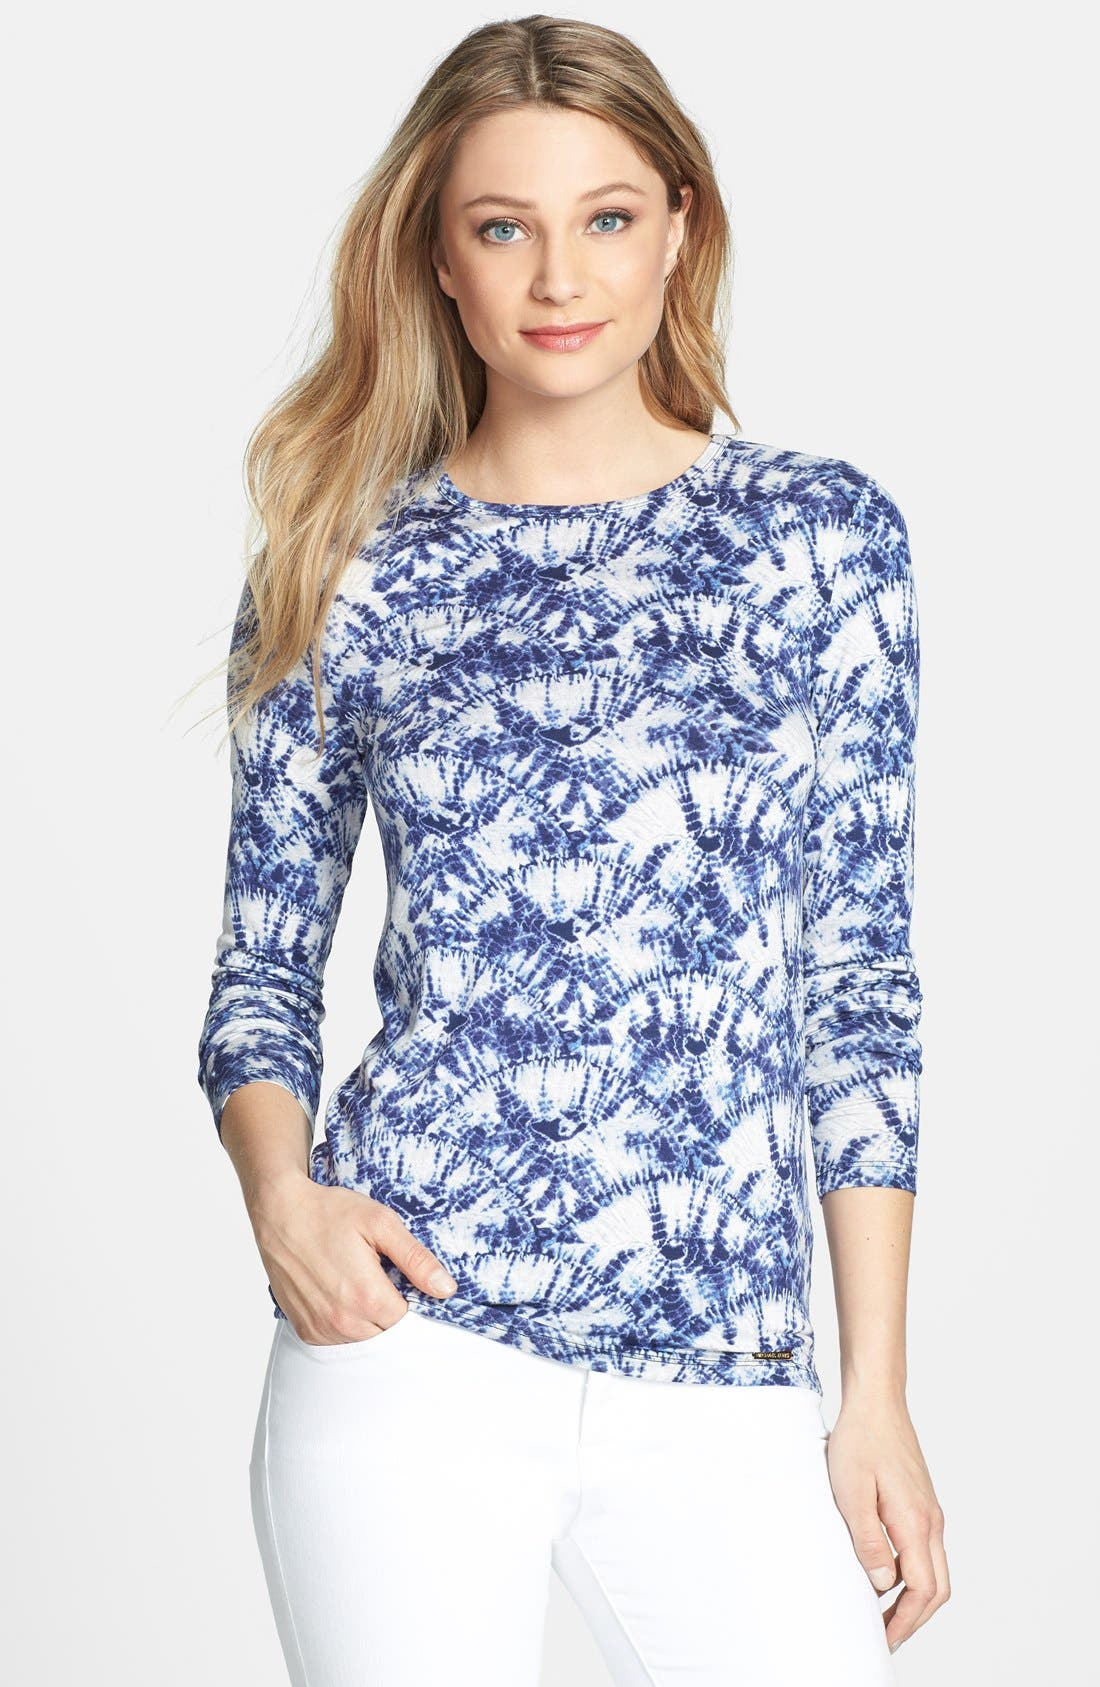 Alternate Image 1 Selected - MICHAEL Michael Kors Print Crewneck Long Sleeve Tee (Regular & Petite)